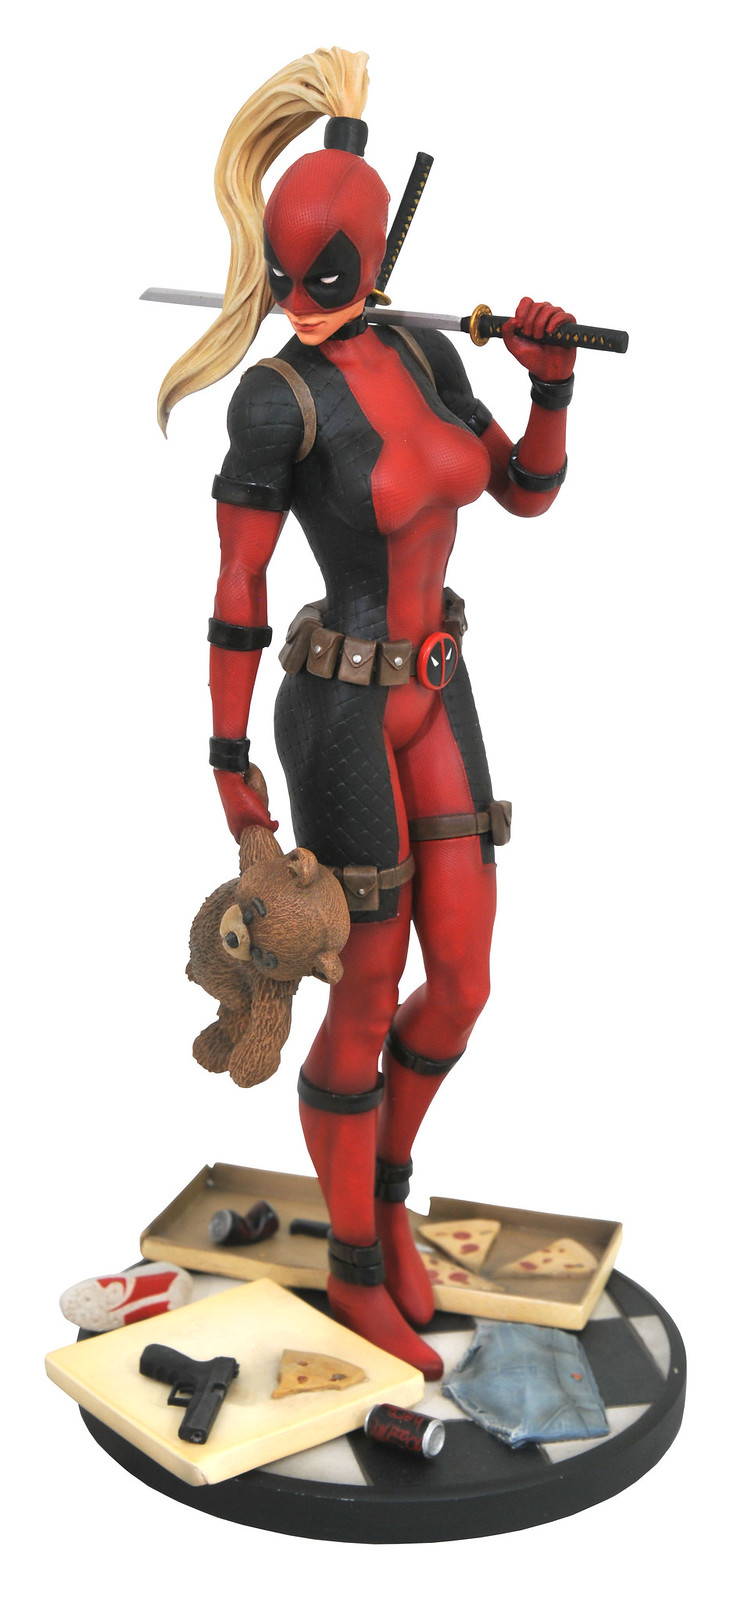 Diamond Select Toys Marvel【死侍小姐】Lady Deadpool 全身雕像作品